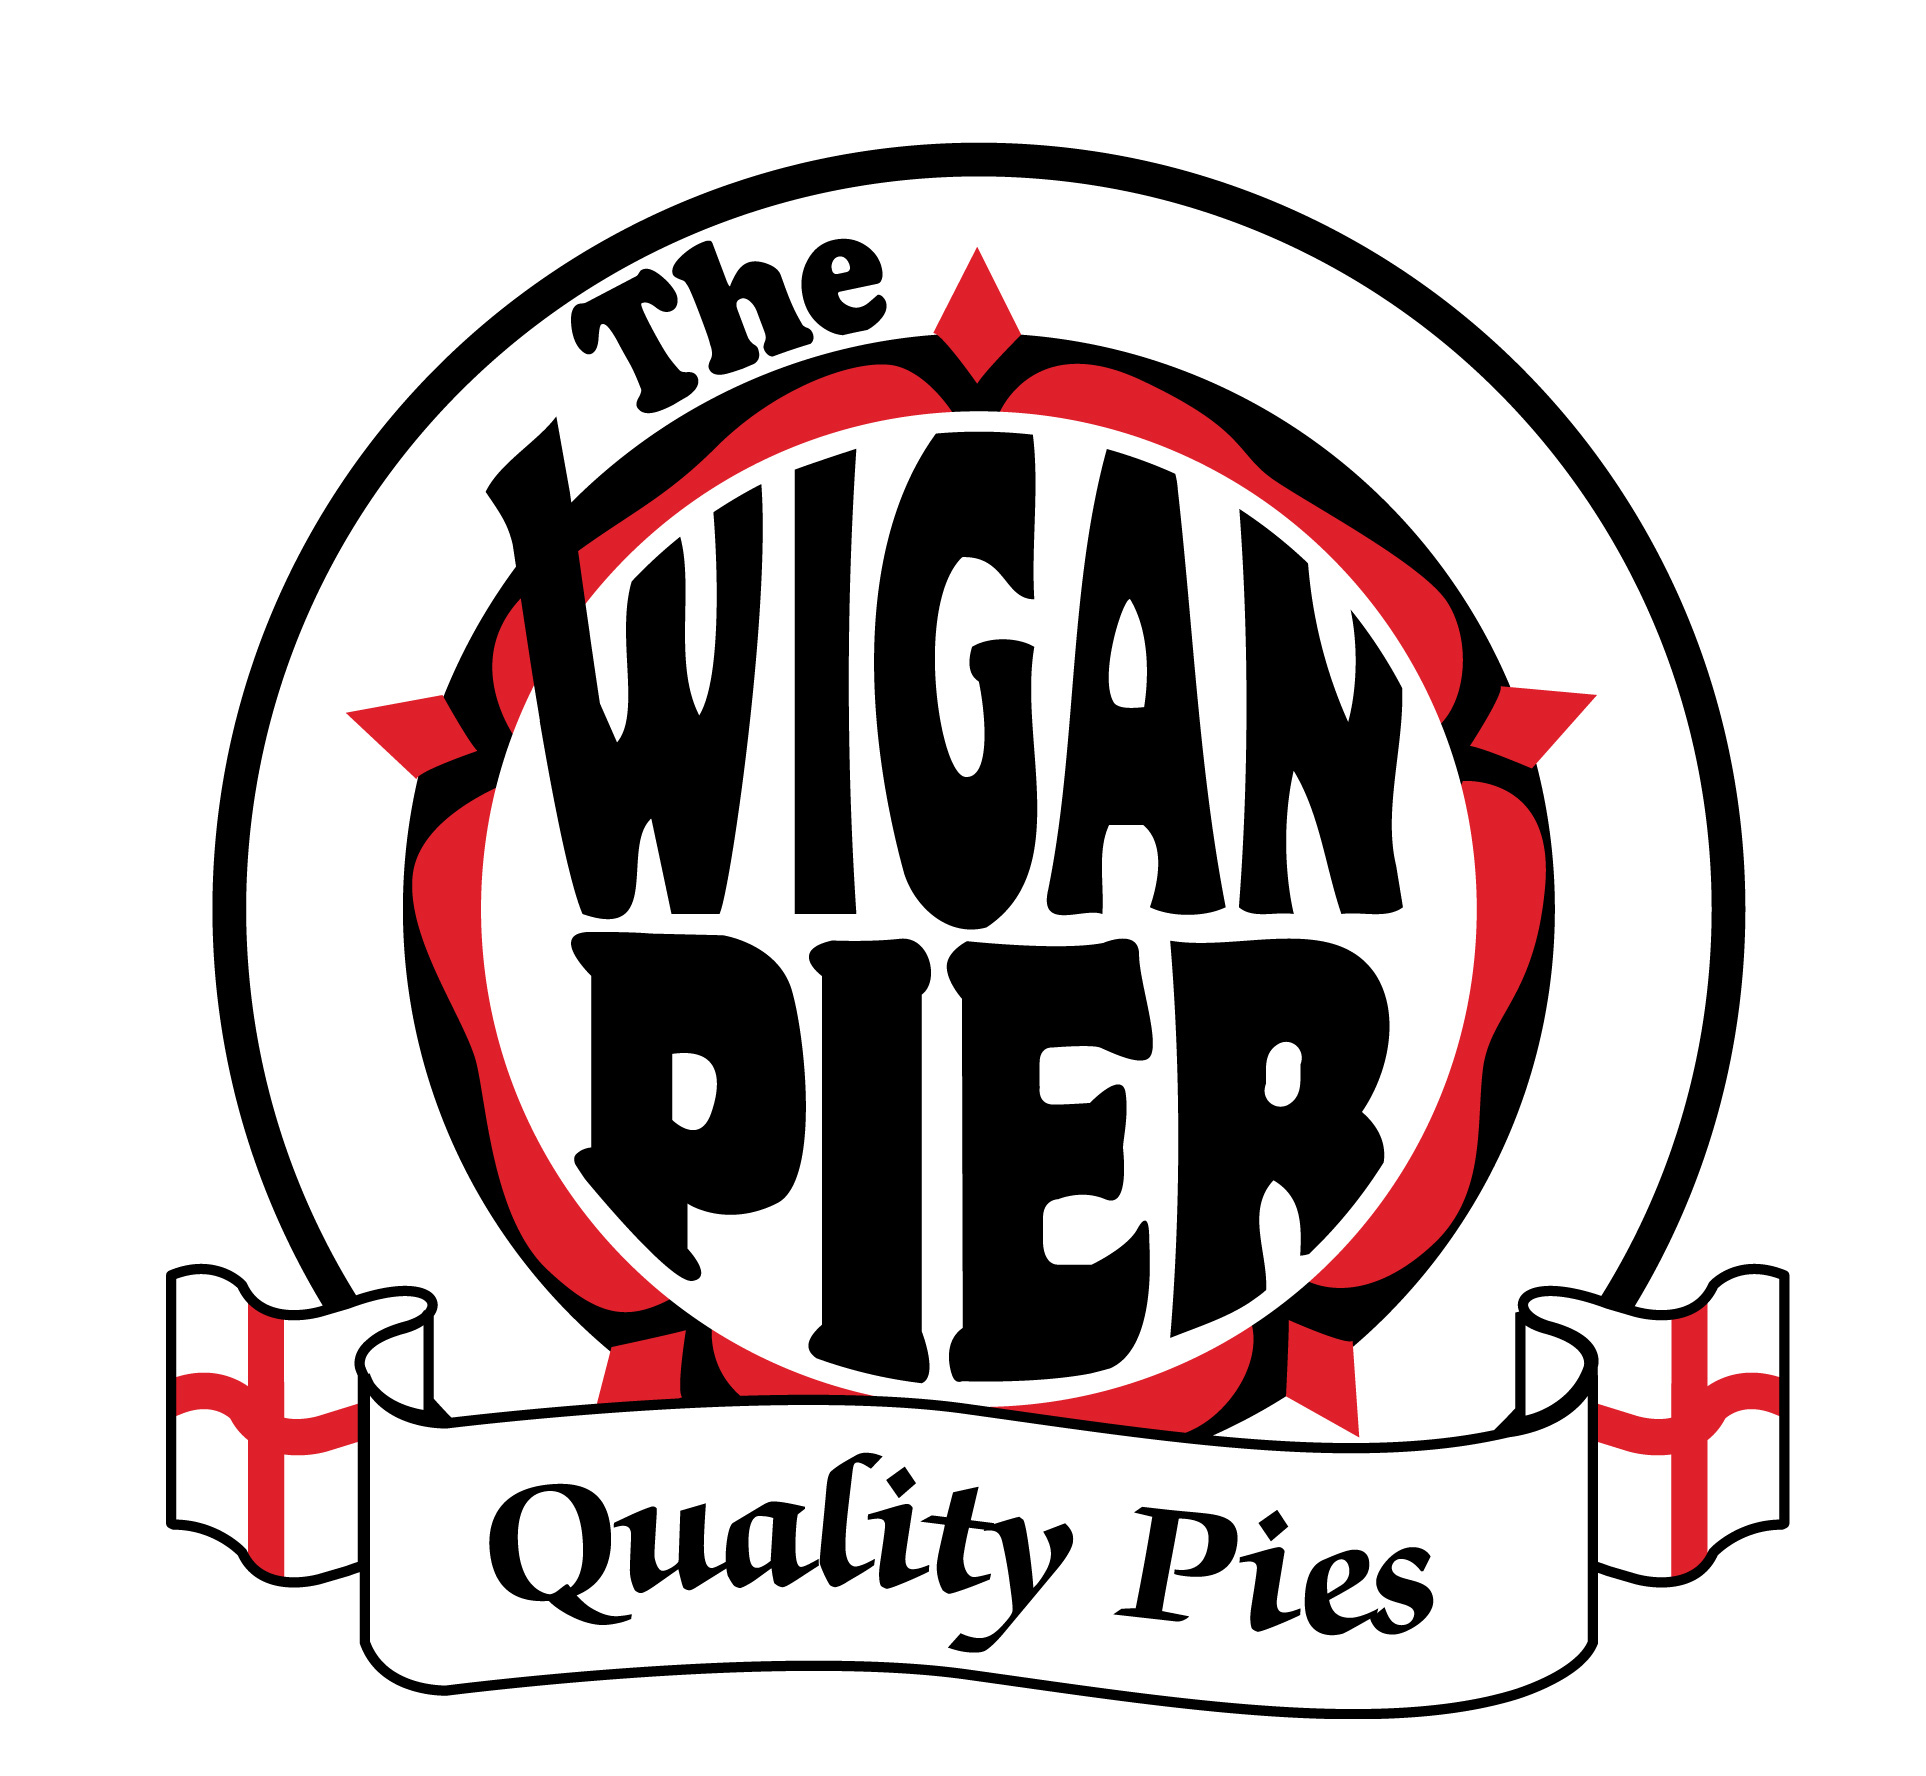 Wigan Pier Quality Pies West Van Physio - Sponsor Test of Metal Inc Group of Events